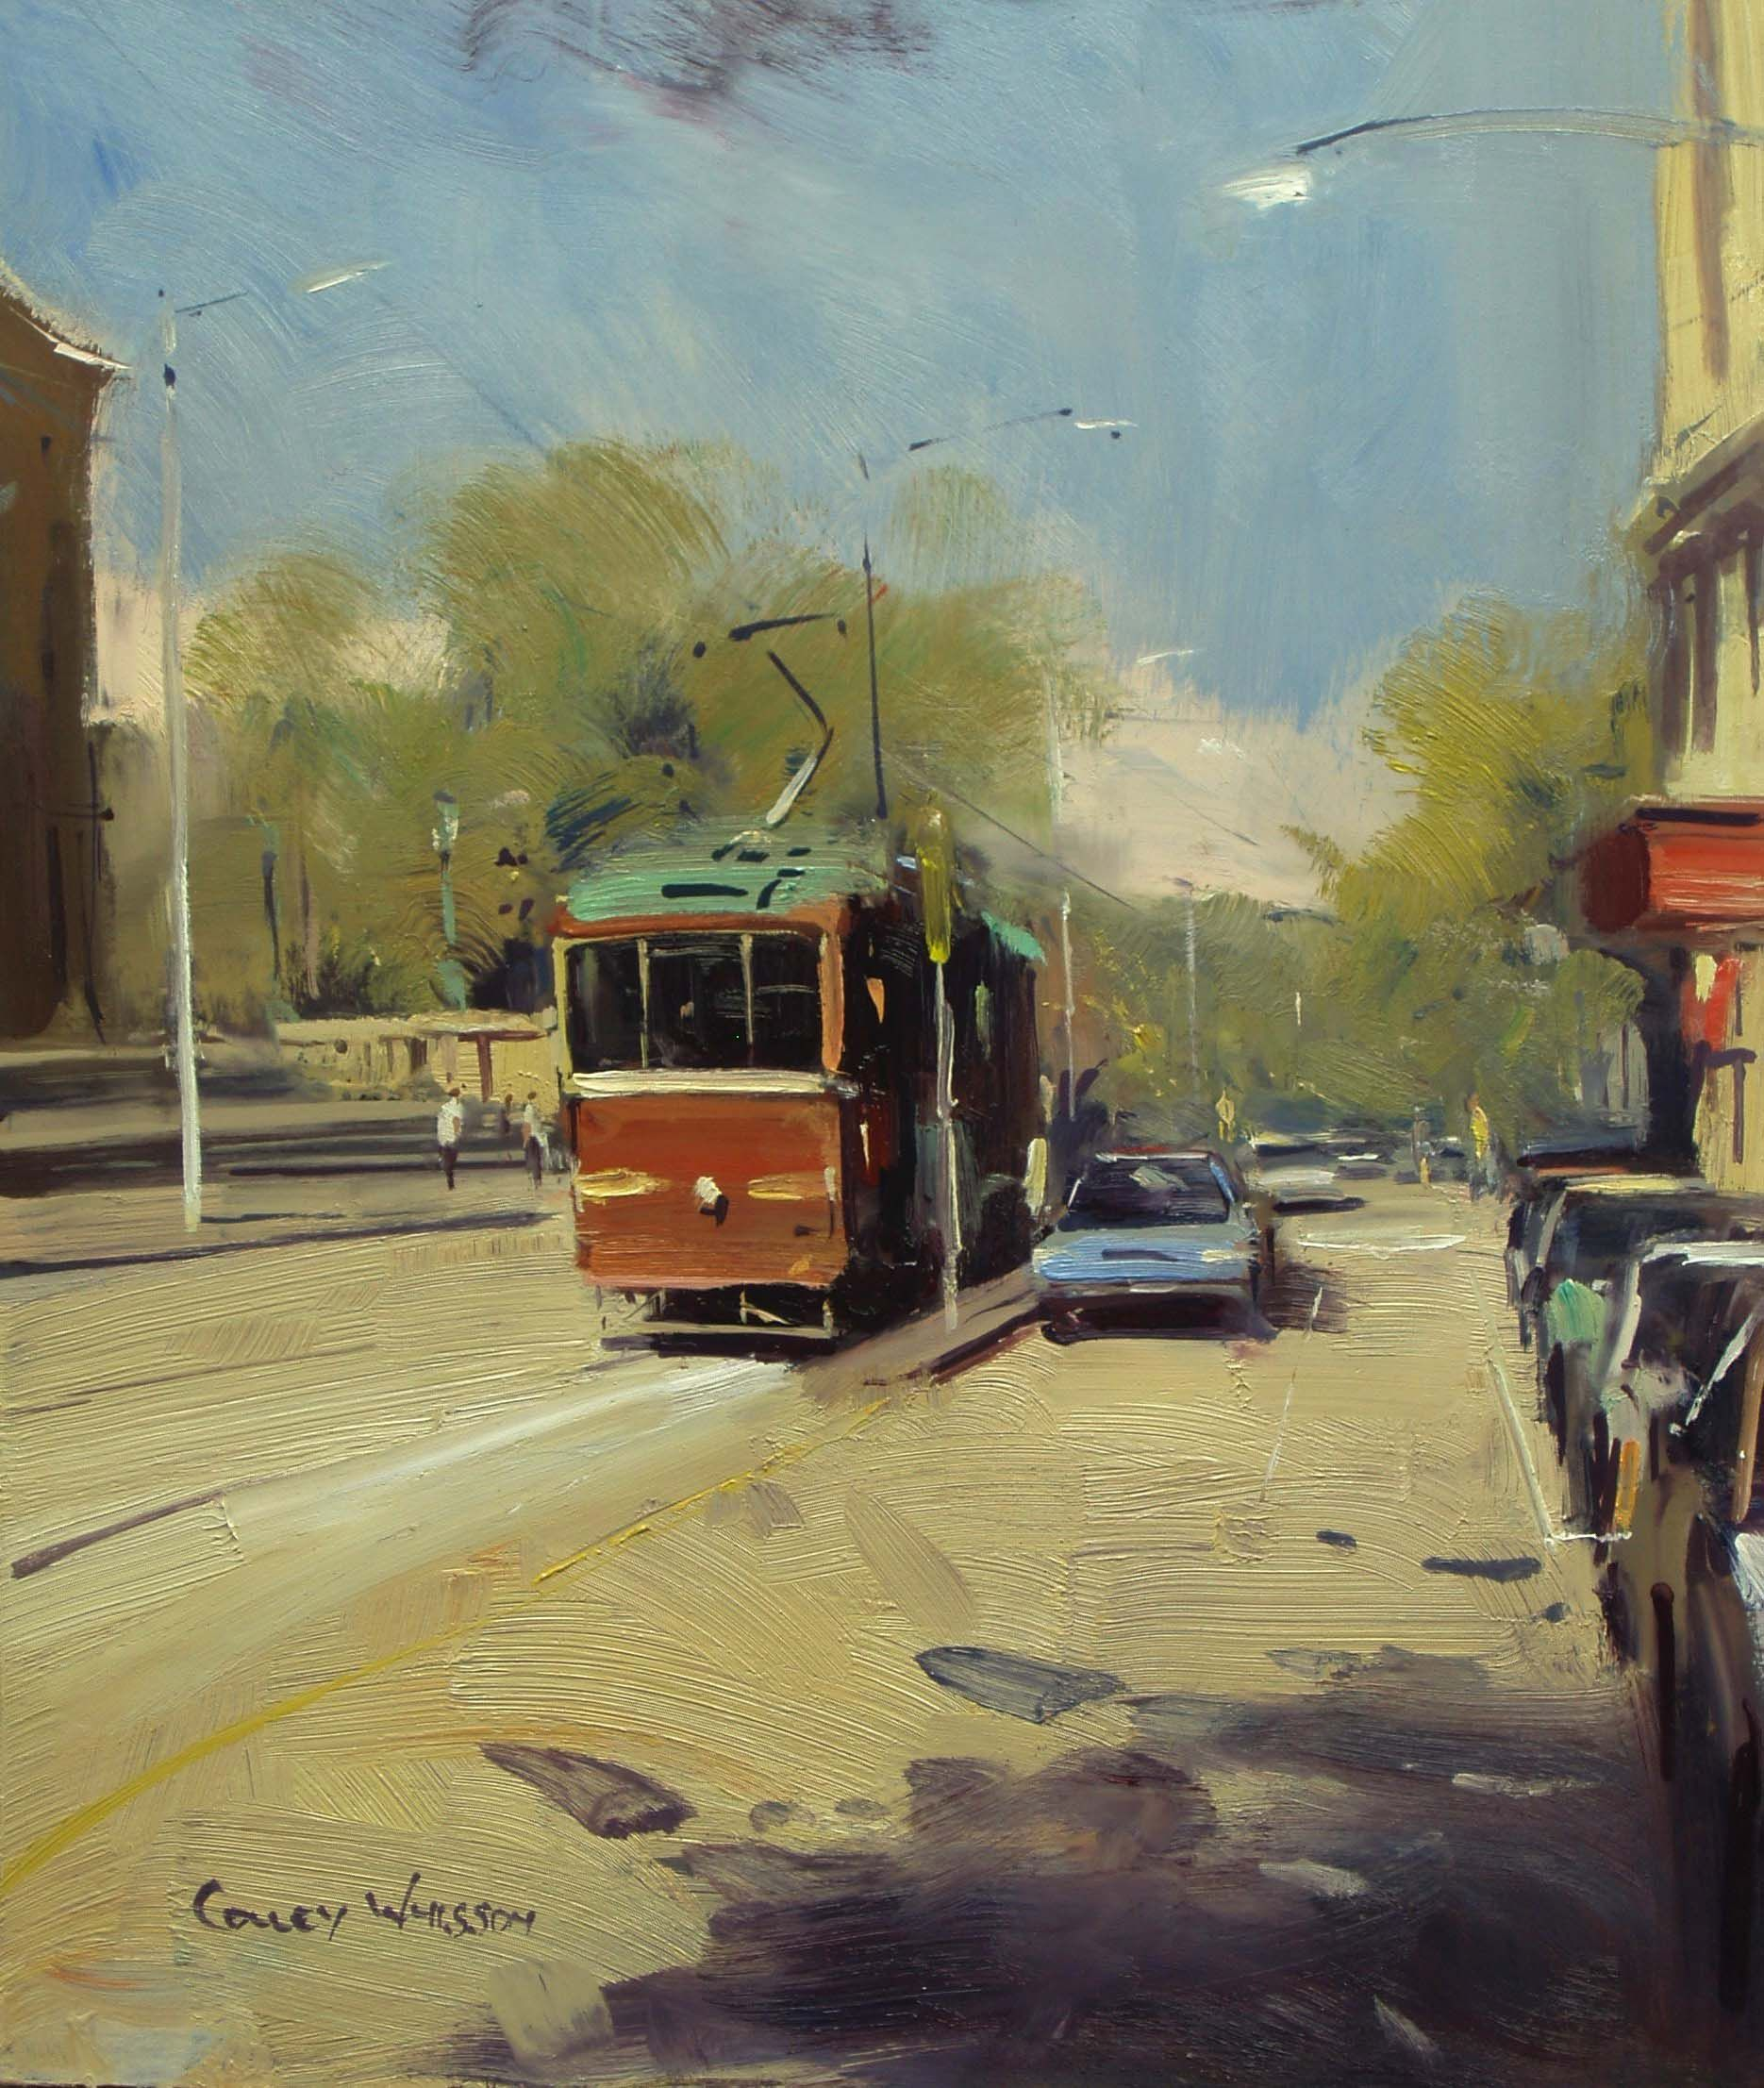 Tell a story through your brushwork and design. Always try to lead the eye around the painting. Enroll in Colley Whisson's 365 day access with mentoring Online course. Click image to learn more